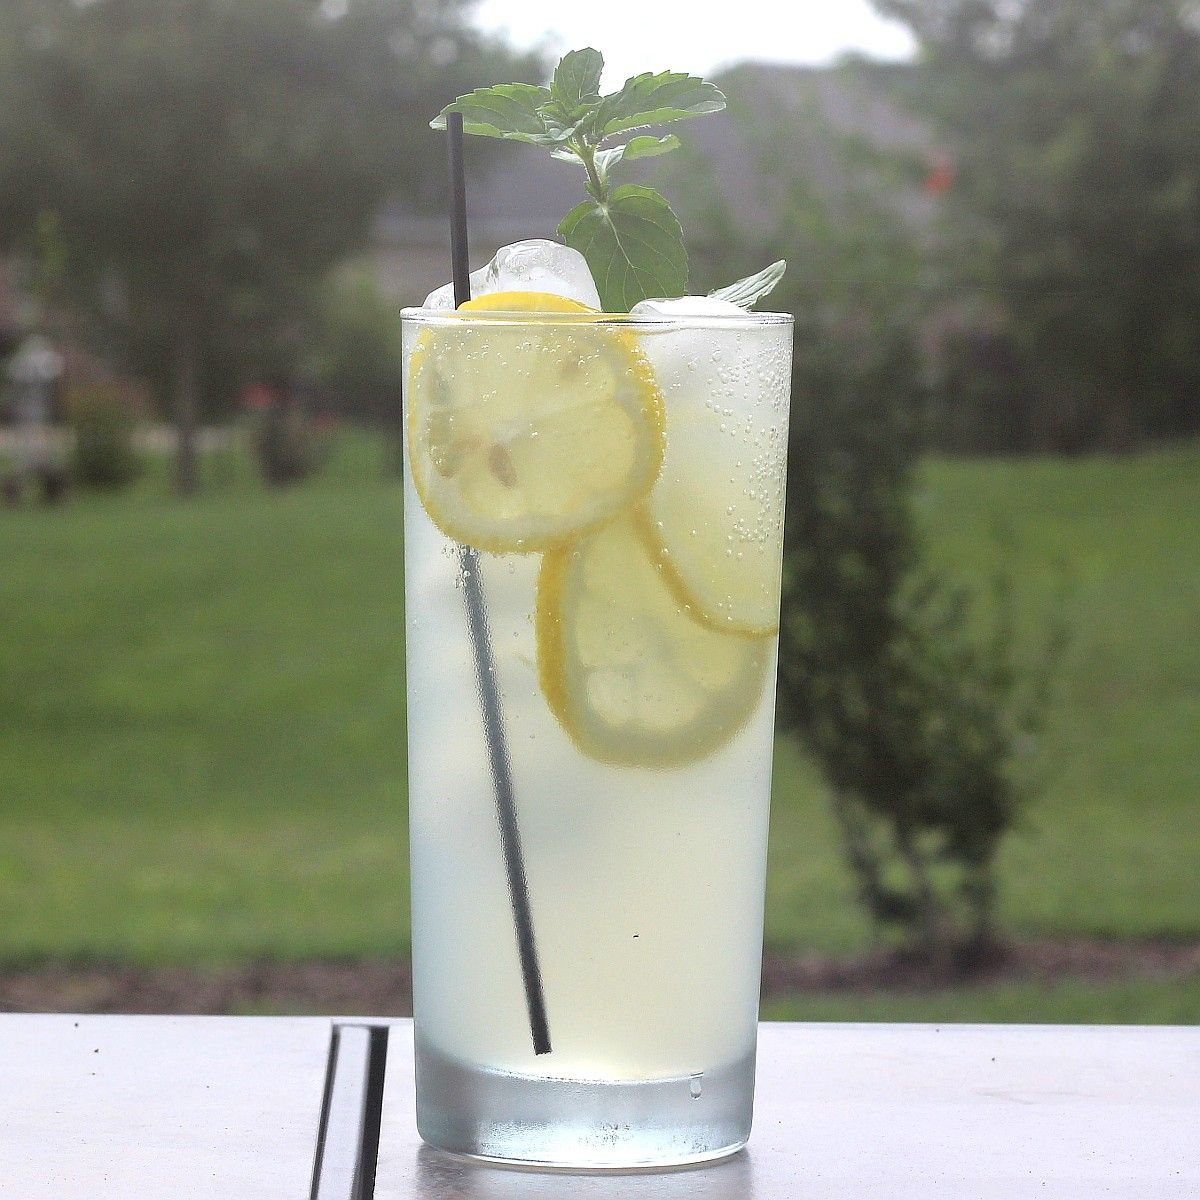 The Limoncello Collins Drink Recipe, Featuring Limoncello